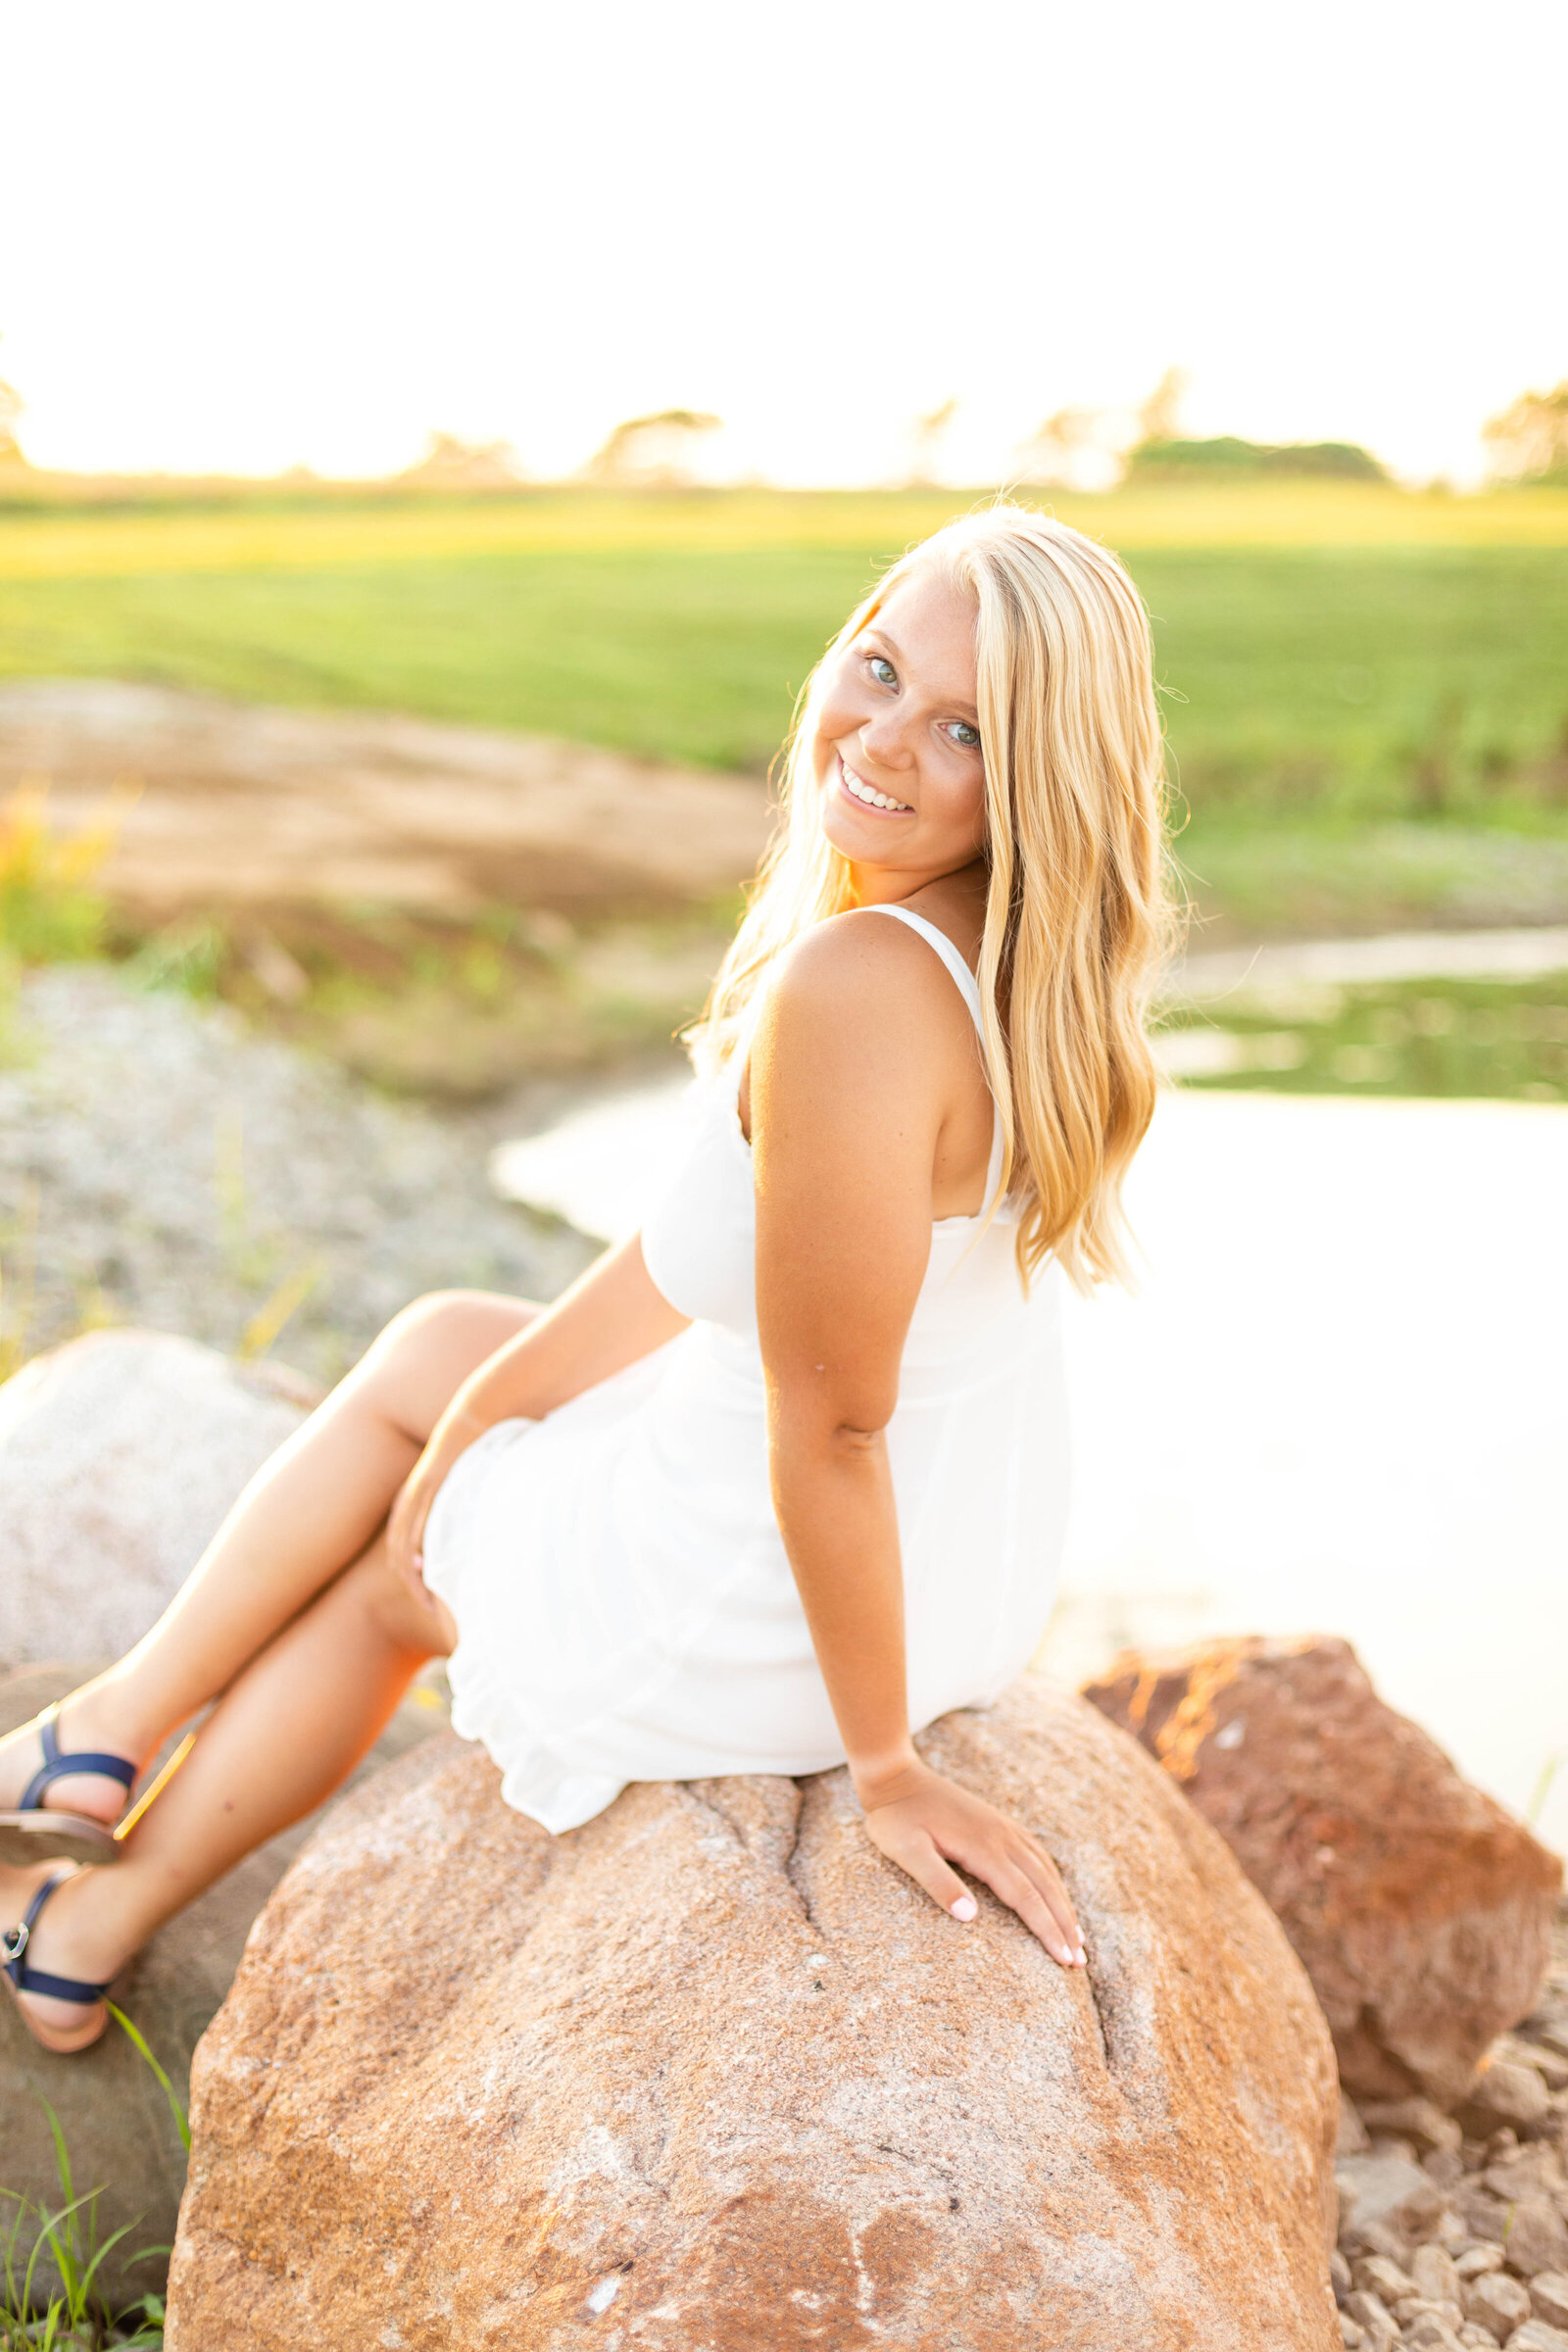 Bourbonnais Senior Photographer